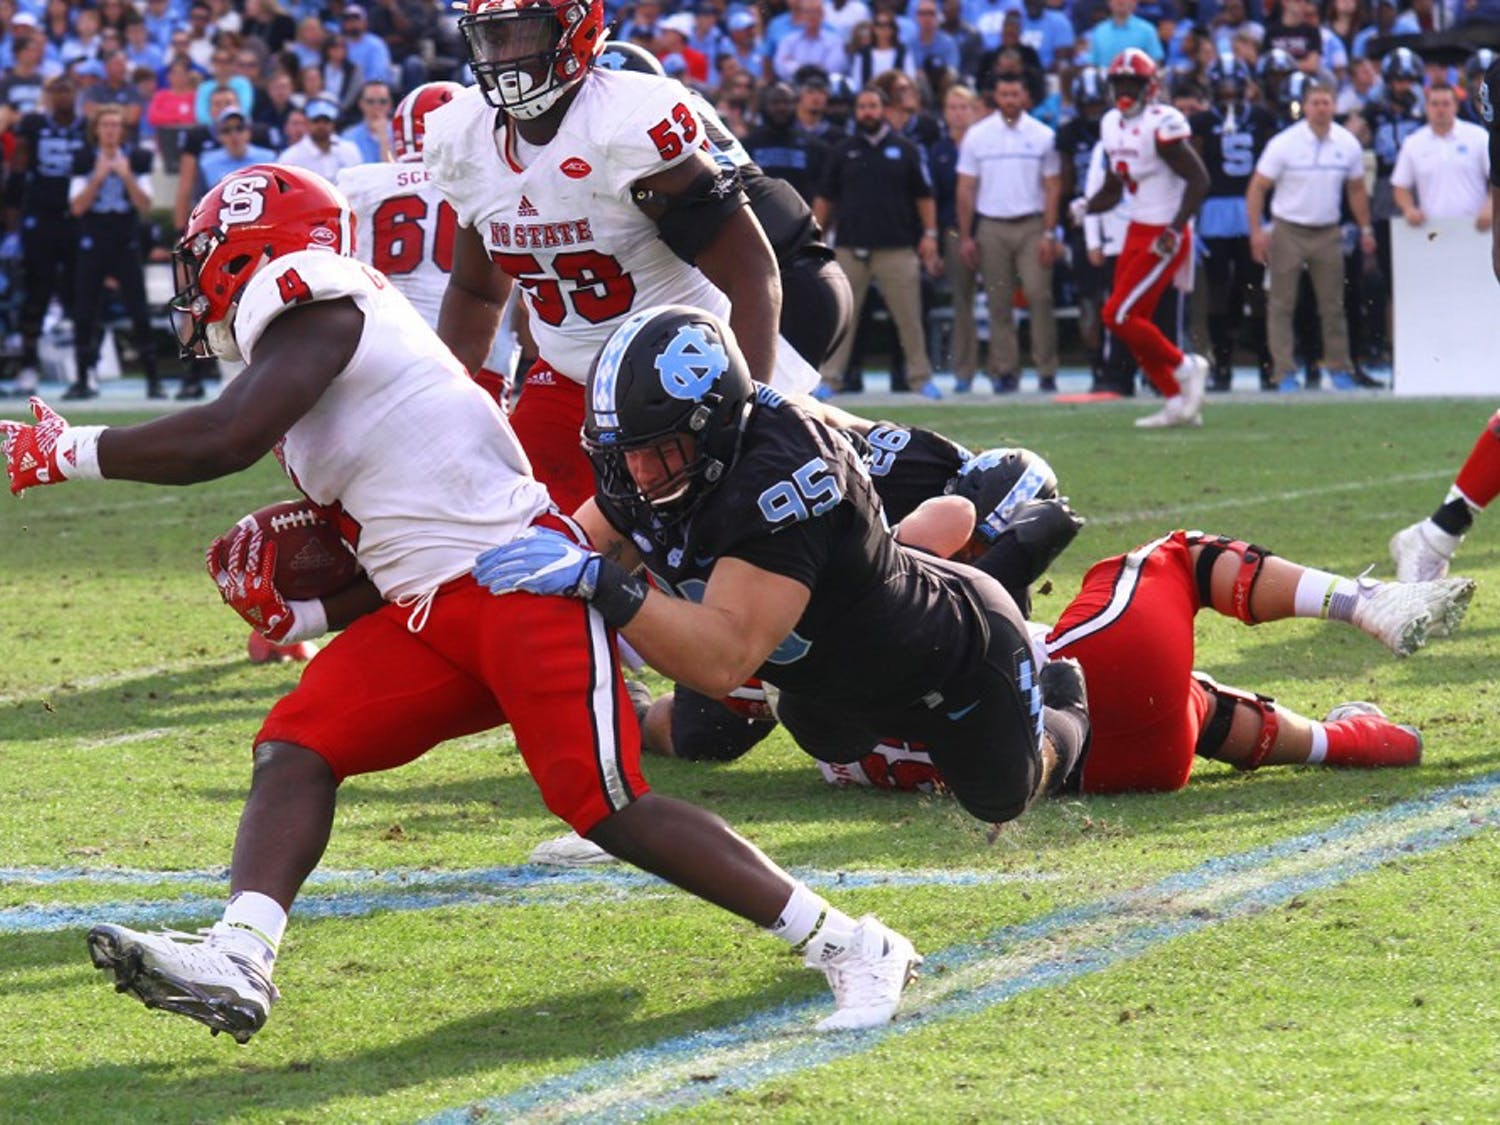 The Tar Heels fell to N.C. State 28-21 Friday afternoon at Kenan Stadium.